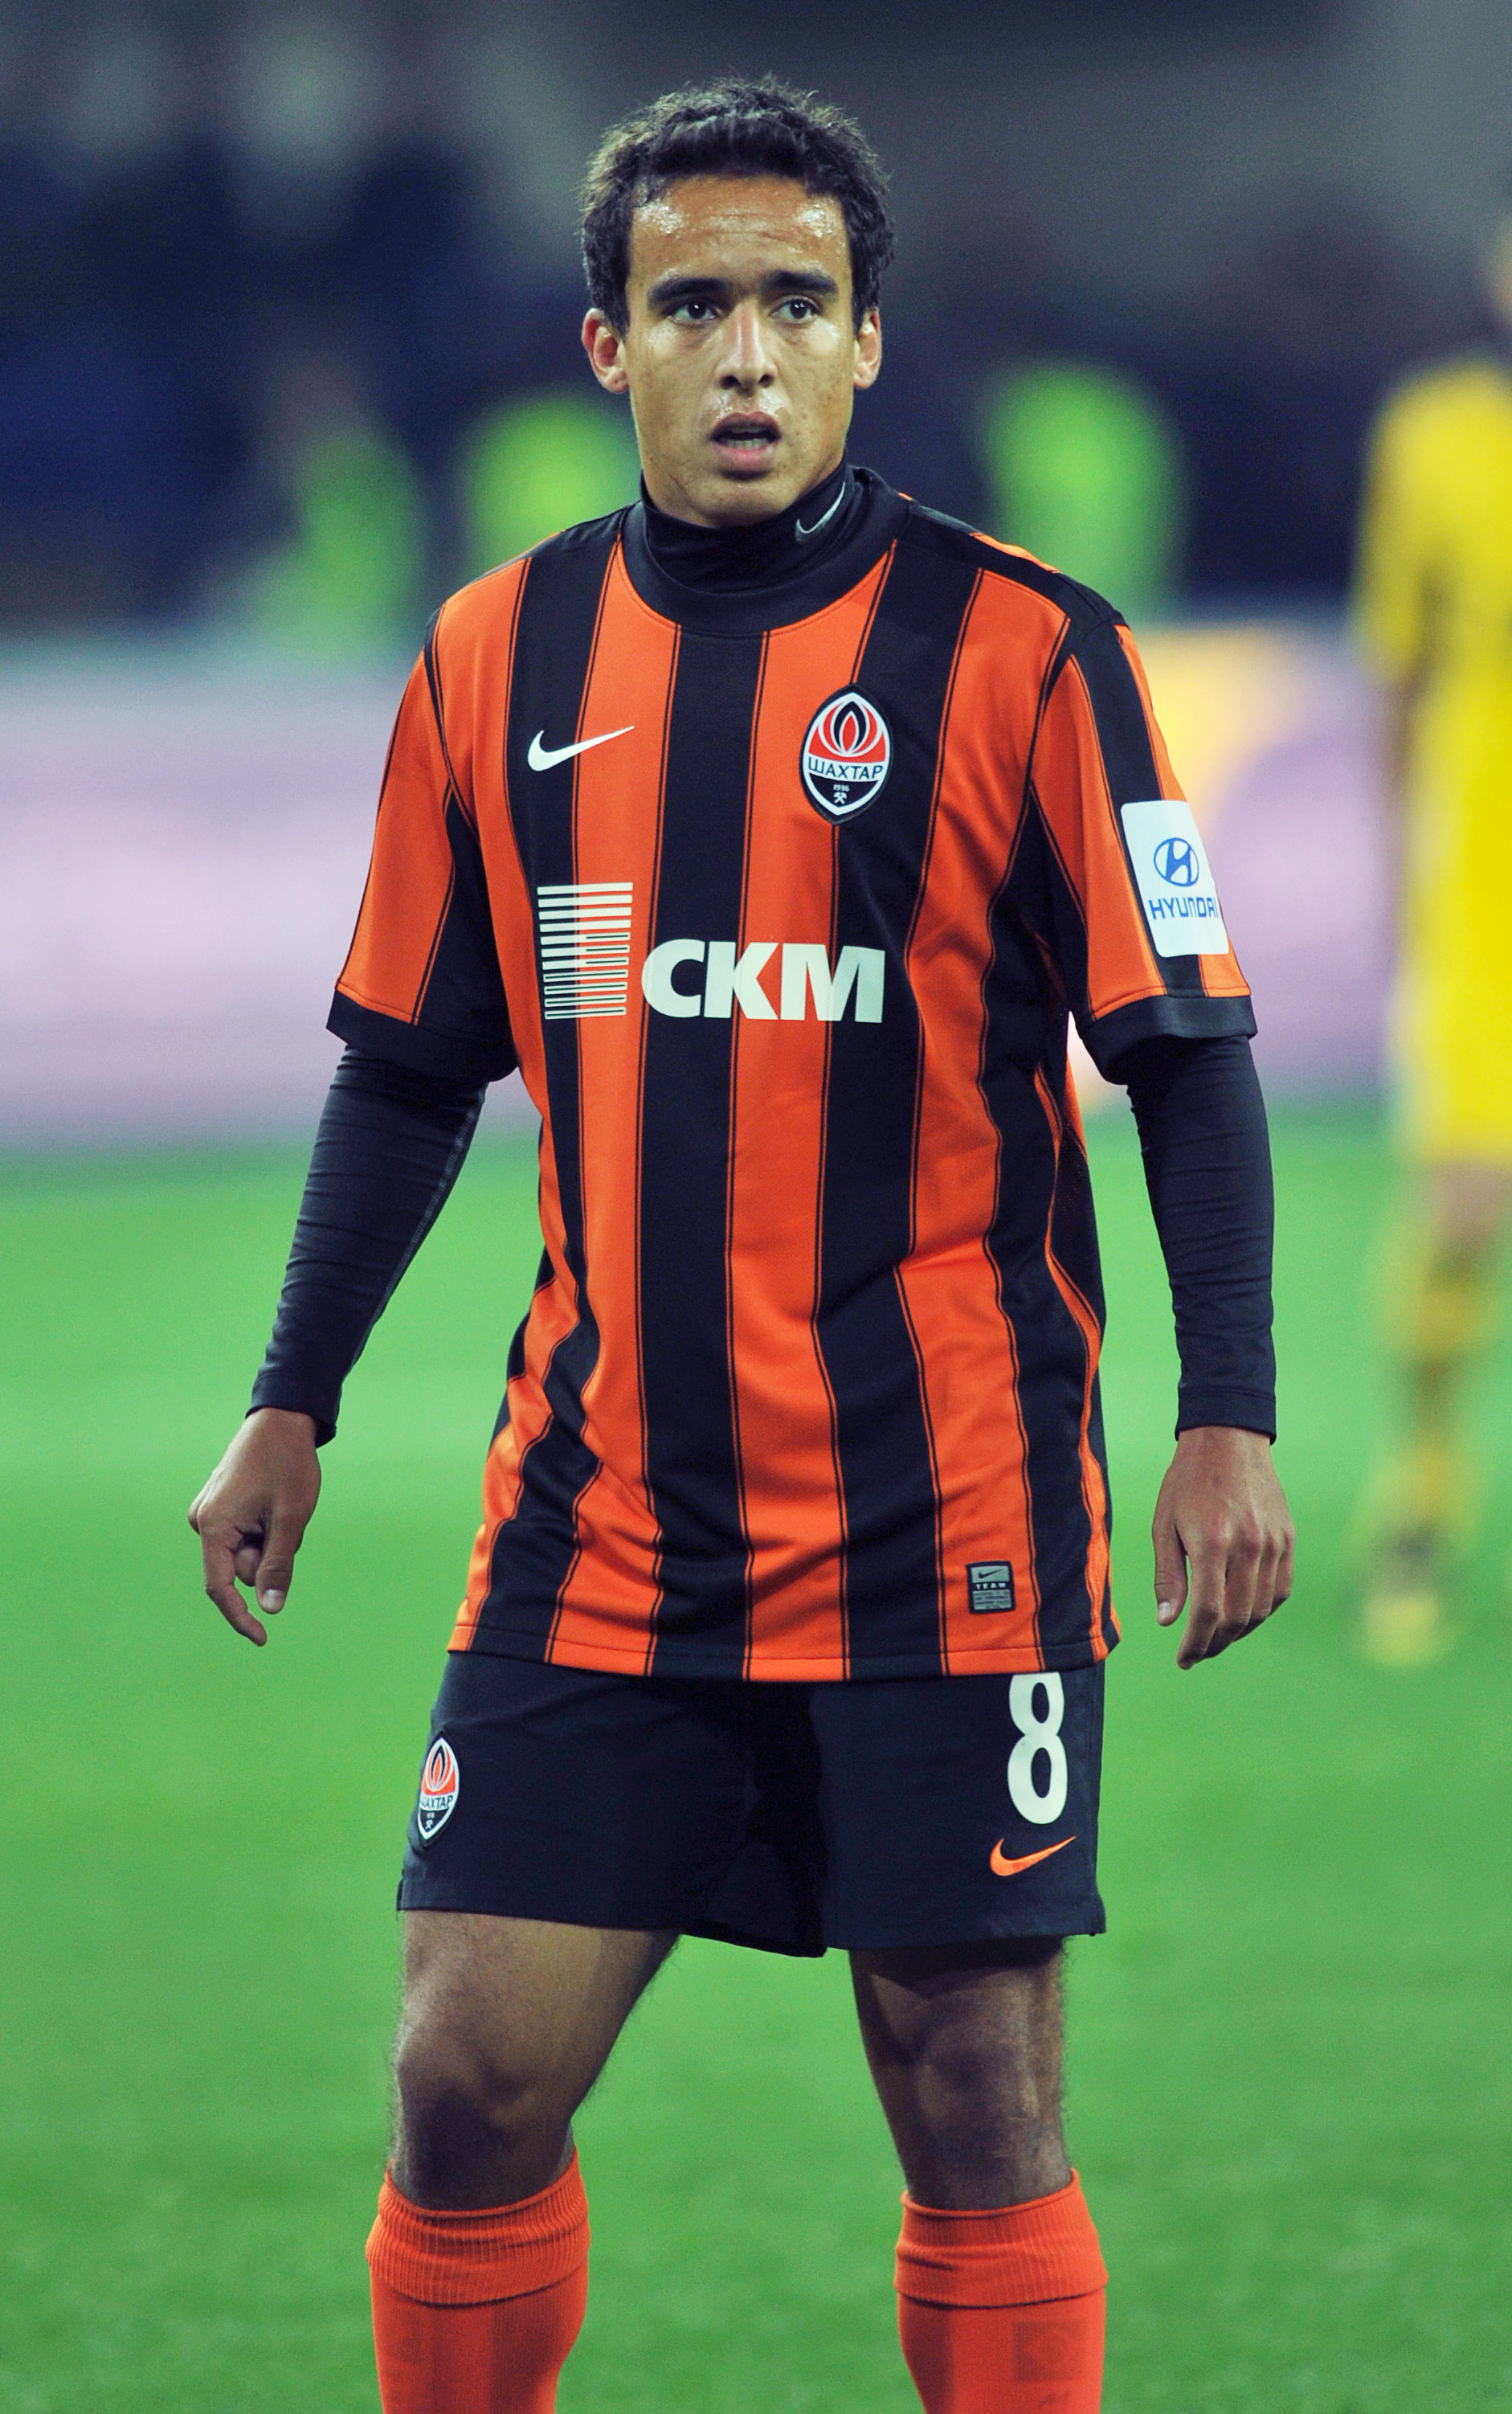 KHARKIV, UKRAINE - SEPTEMBER 25:  Jadson of Shakhtar Donetsk in action during the Russian Premier League match between Metalist Kharkiv and Shakhtar Donetsk at the Metalist Stadium  on September 25, 2010 in Kharkiv, Ukraine.   (Photo by EuroFootball/Getty